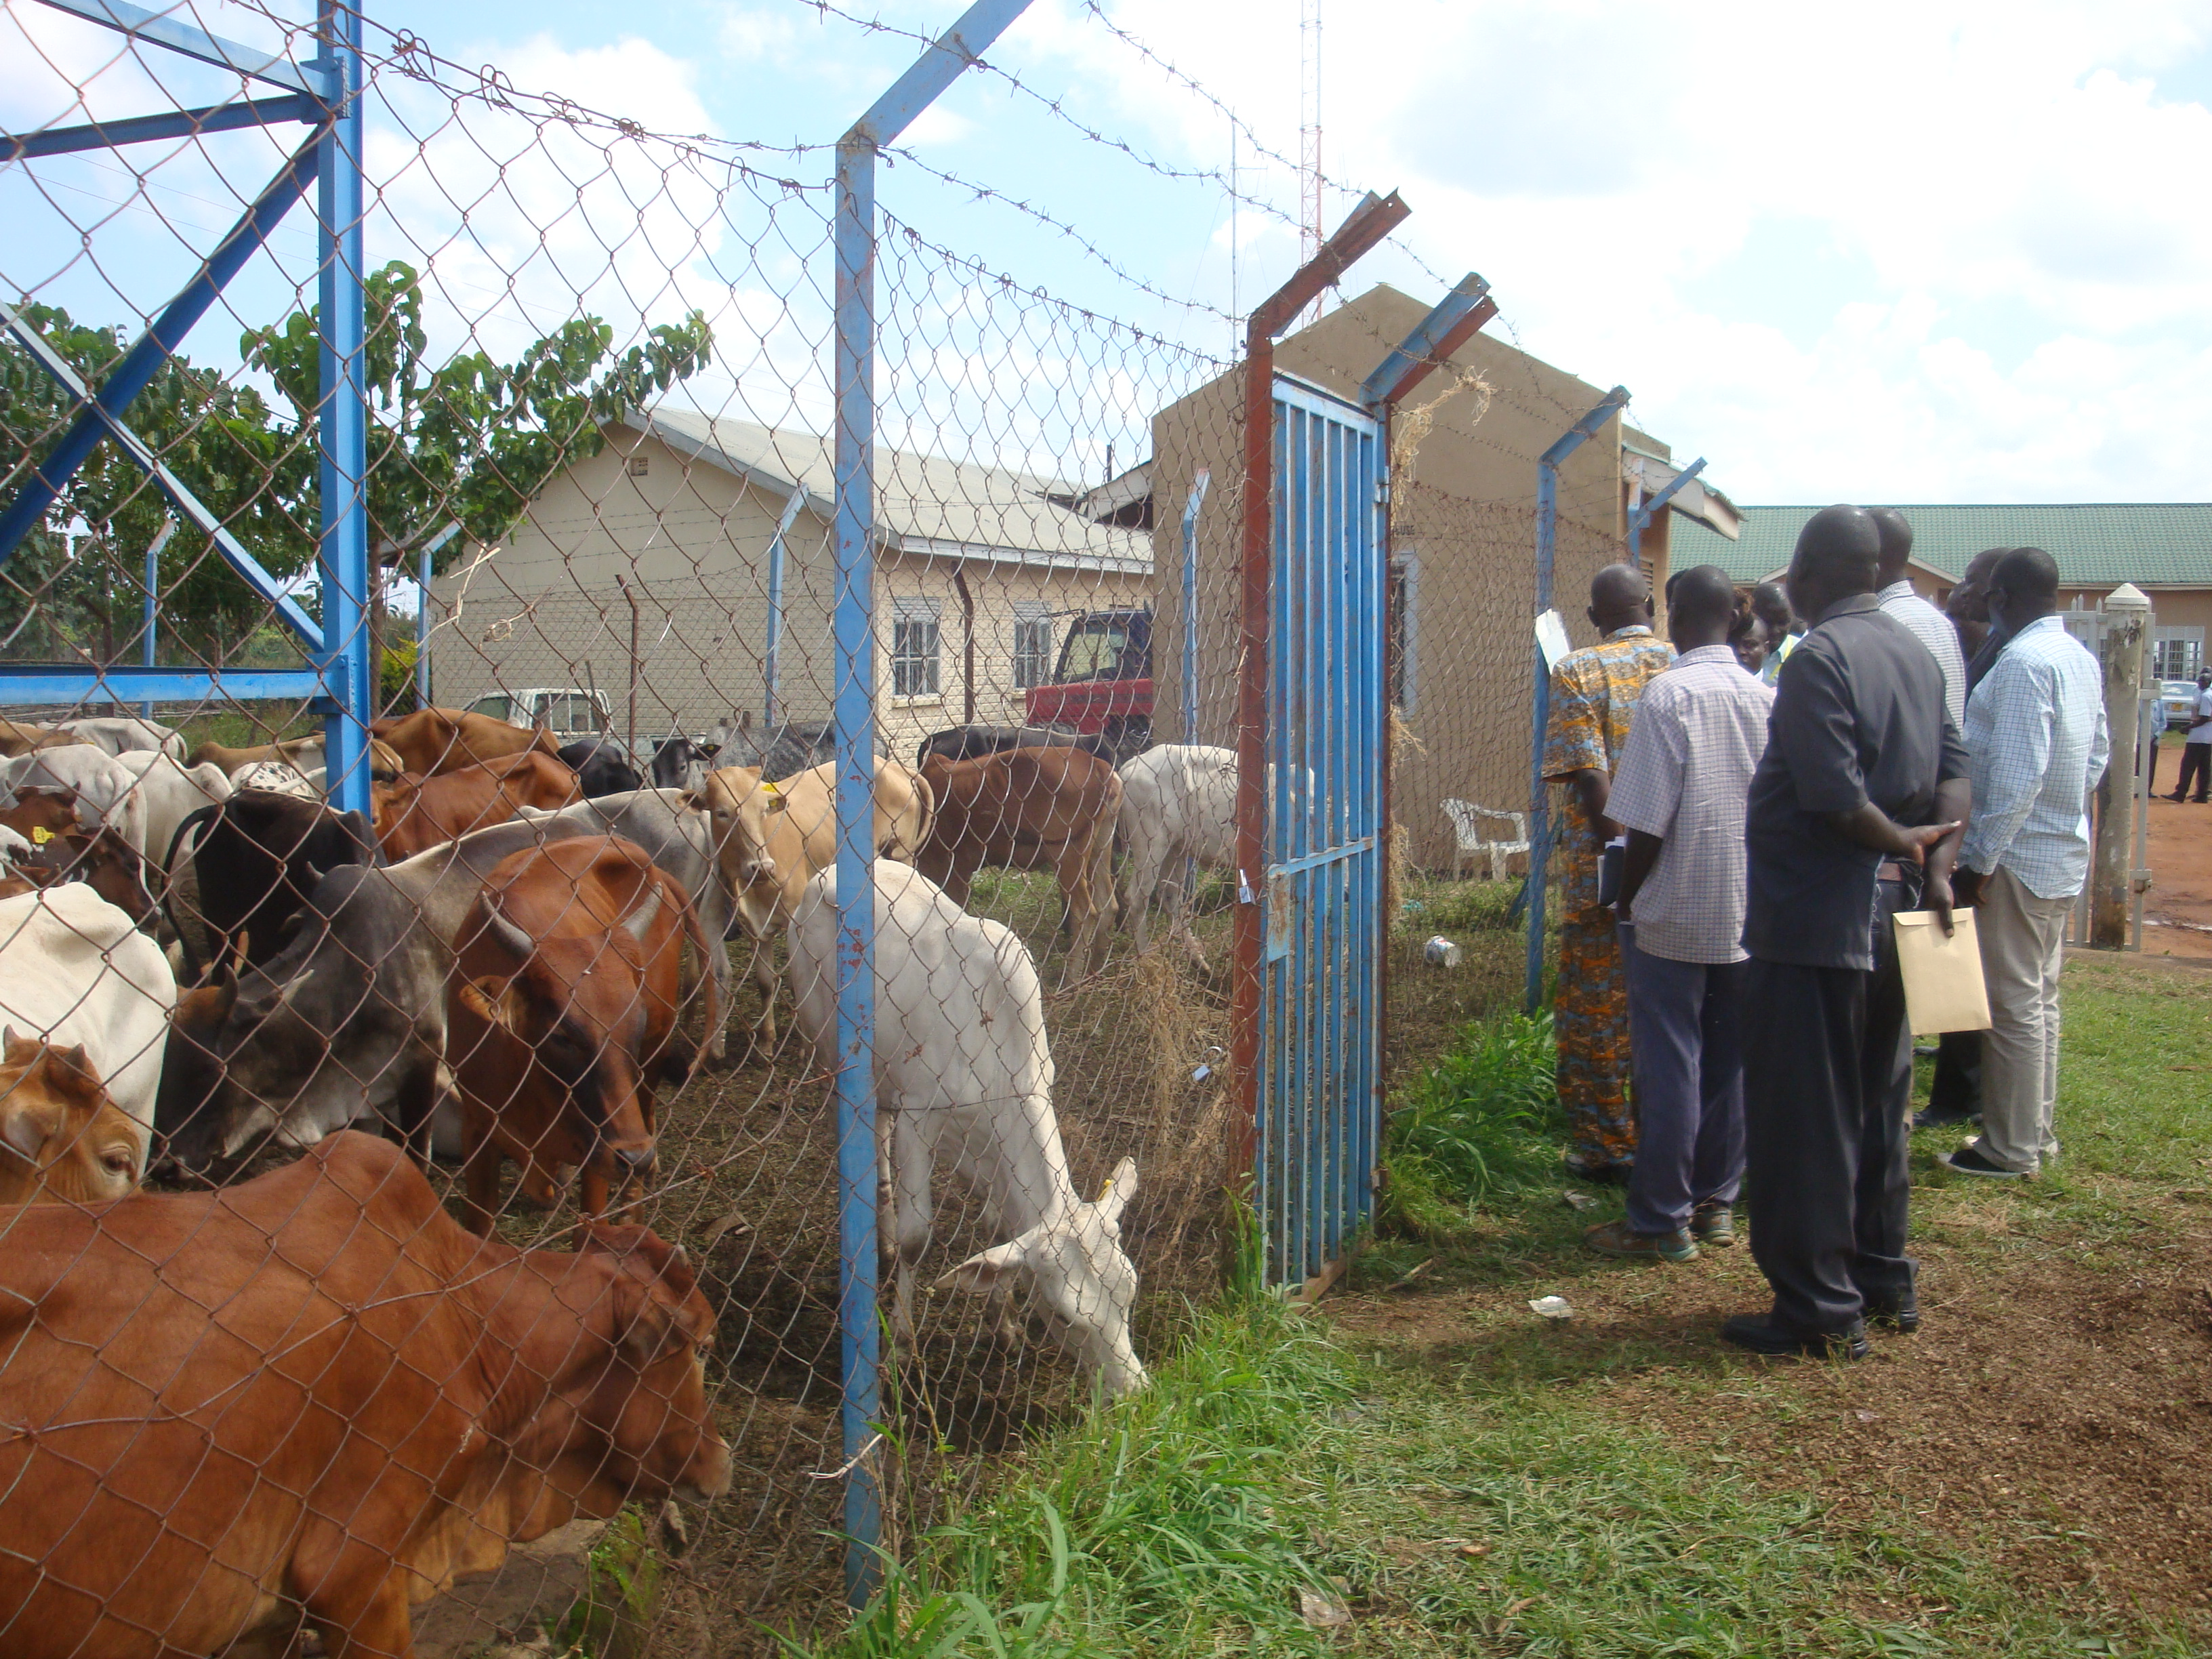 Amuru district leaders seeing the restocking cattle before they were distributing